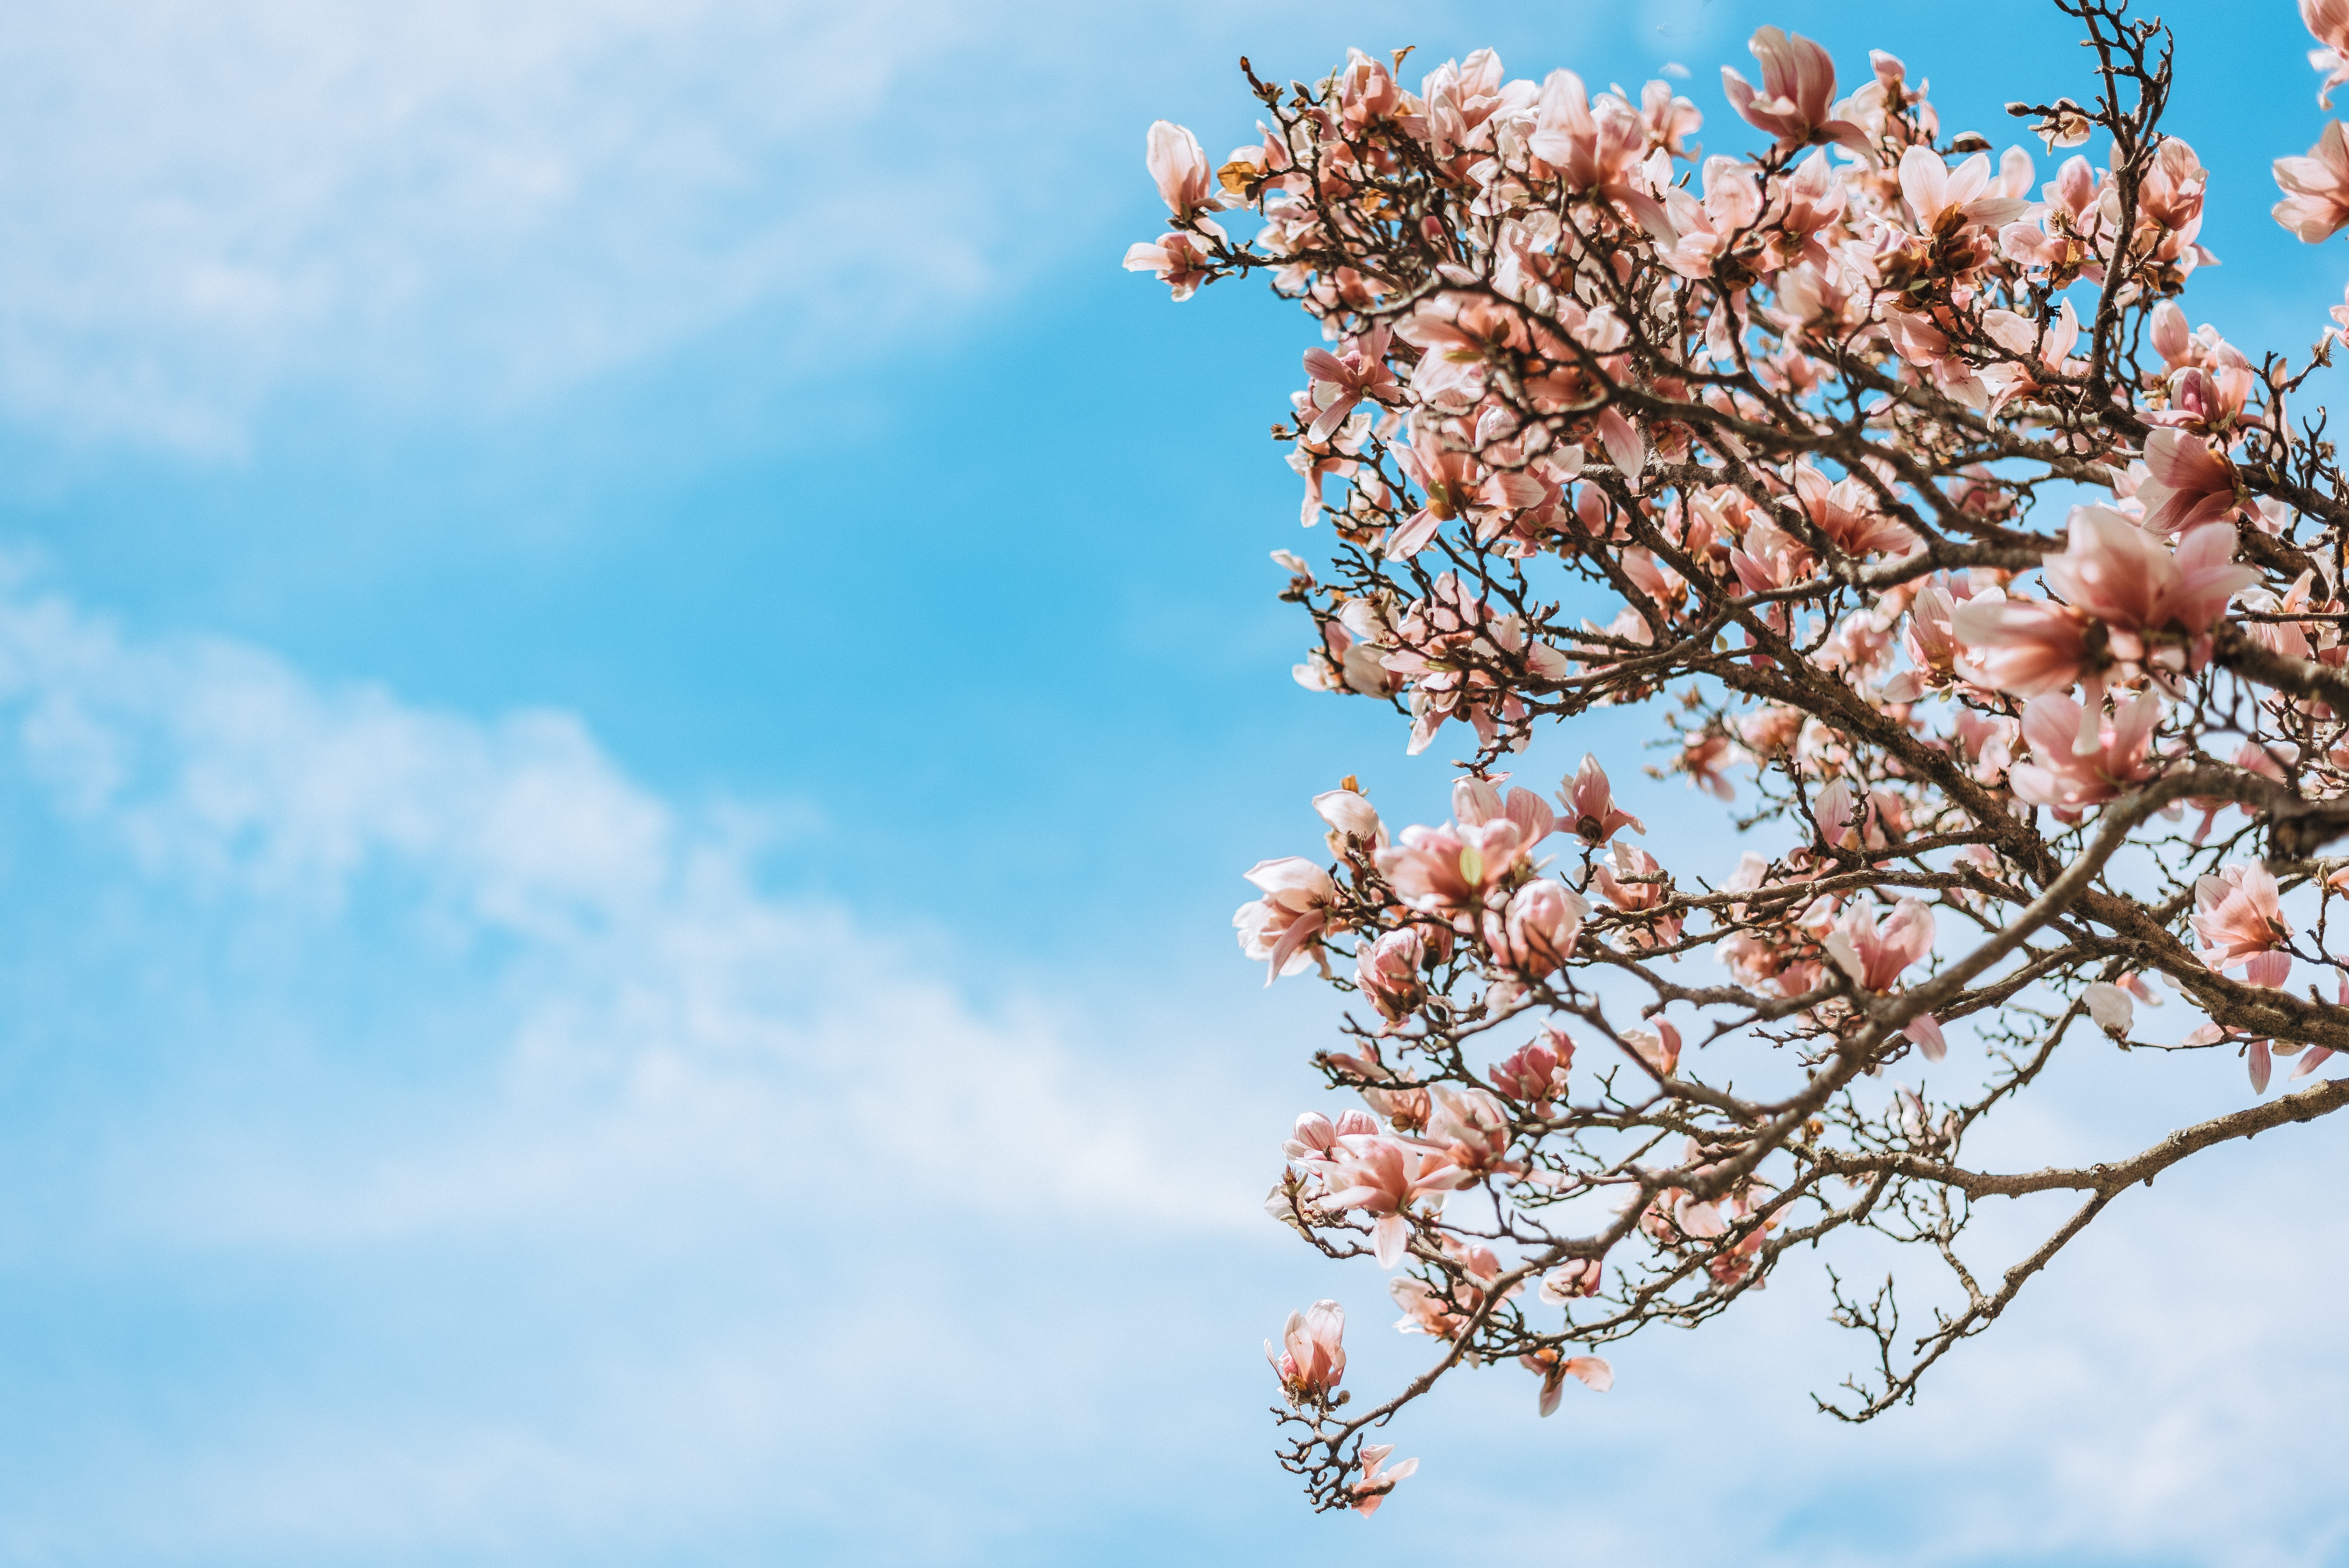 low-angle photography of pink cherry blossom